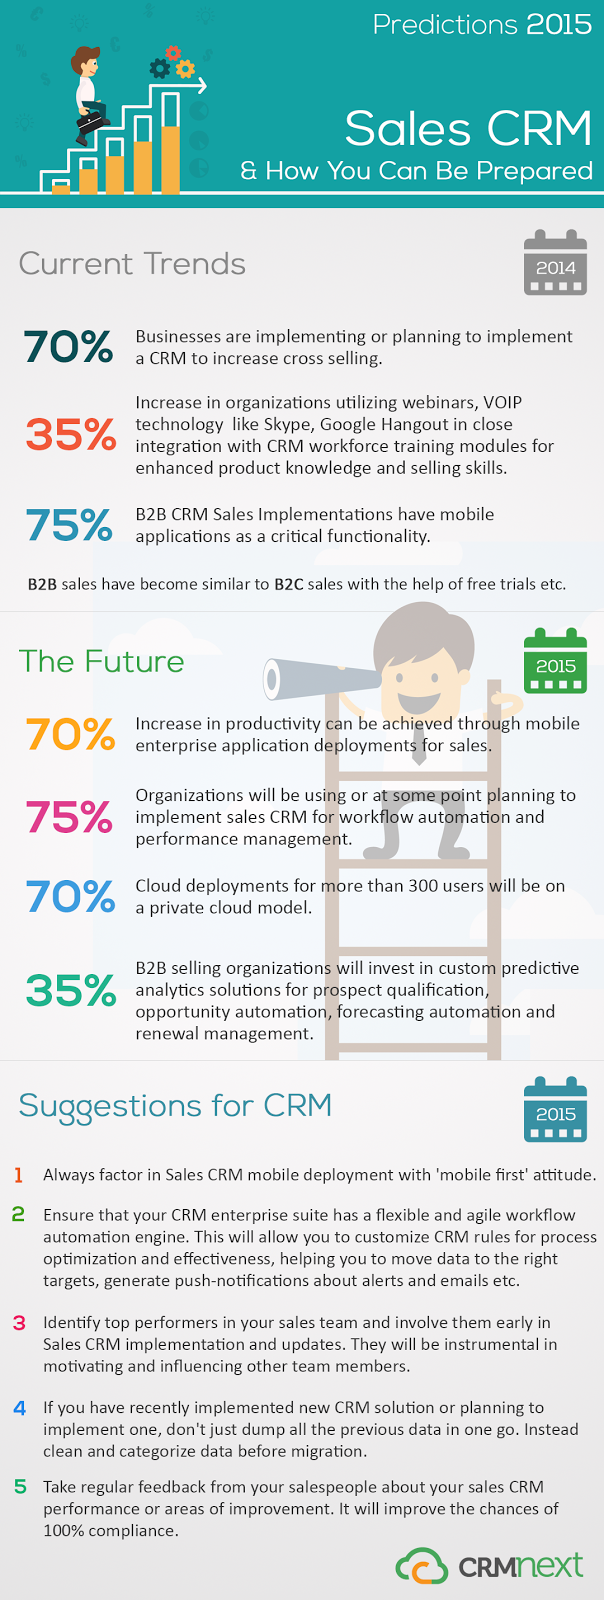 Predictions 2015: Sales CRM And How You Can Be Prepared